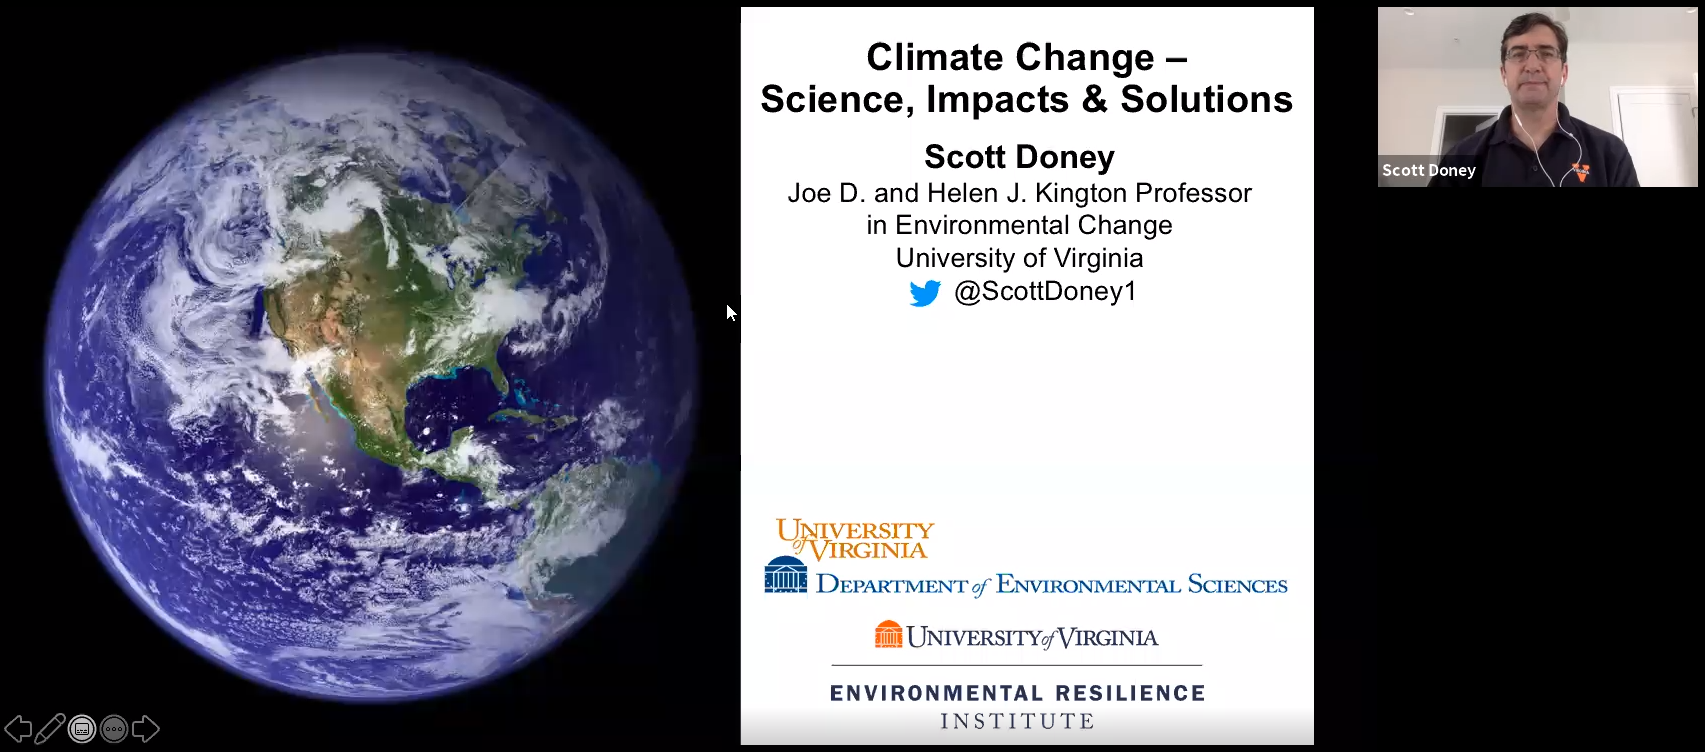 Screenshot of the video lecture showing the earth and Scott Doney